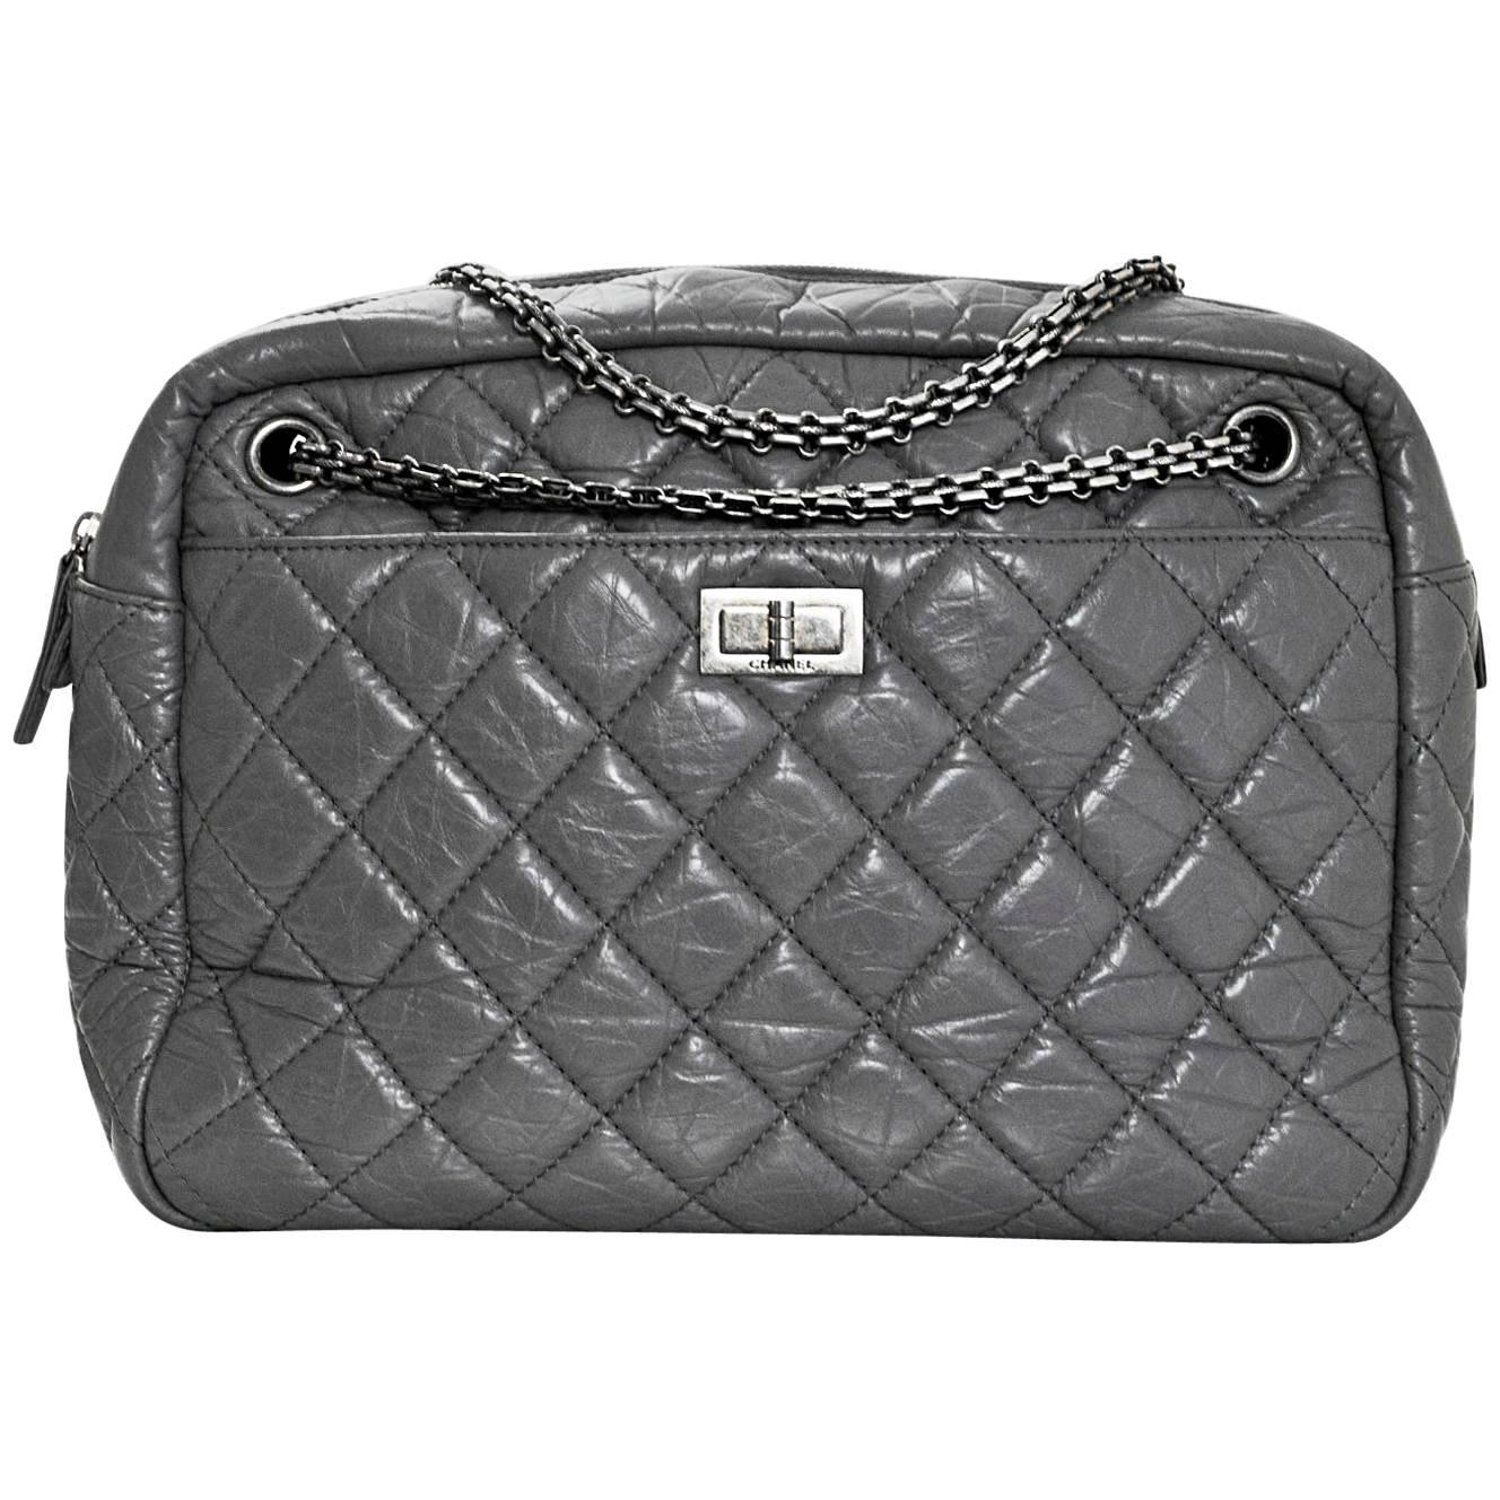 30292e8f07c793 Chanel Grey Quilted Aged Calfskin Leather Large Reissue 2.55 Camera Case Bag